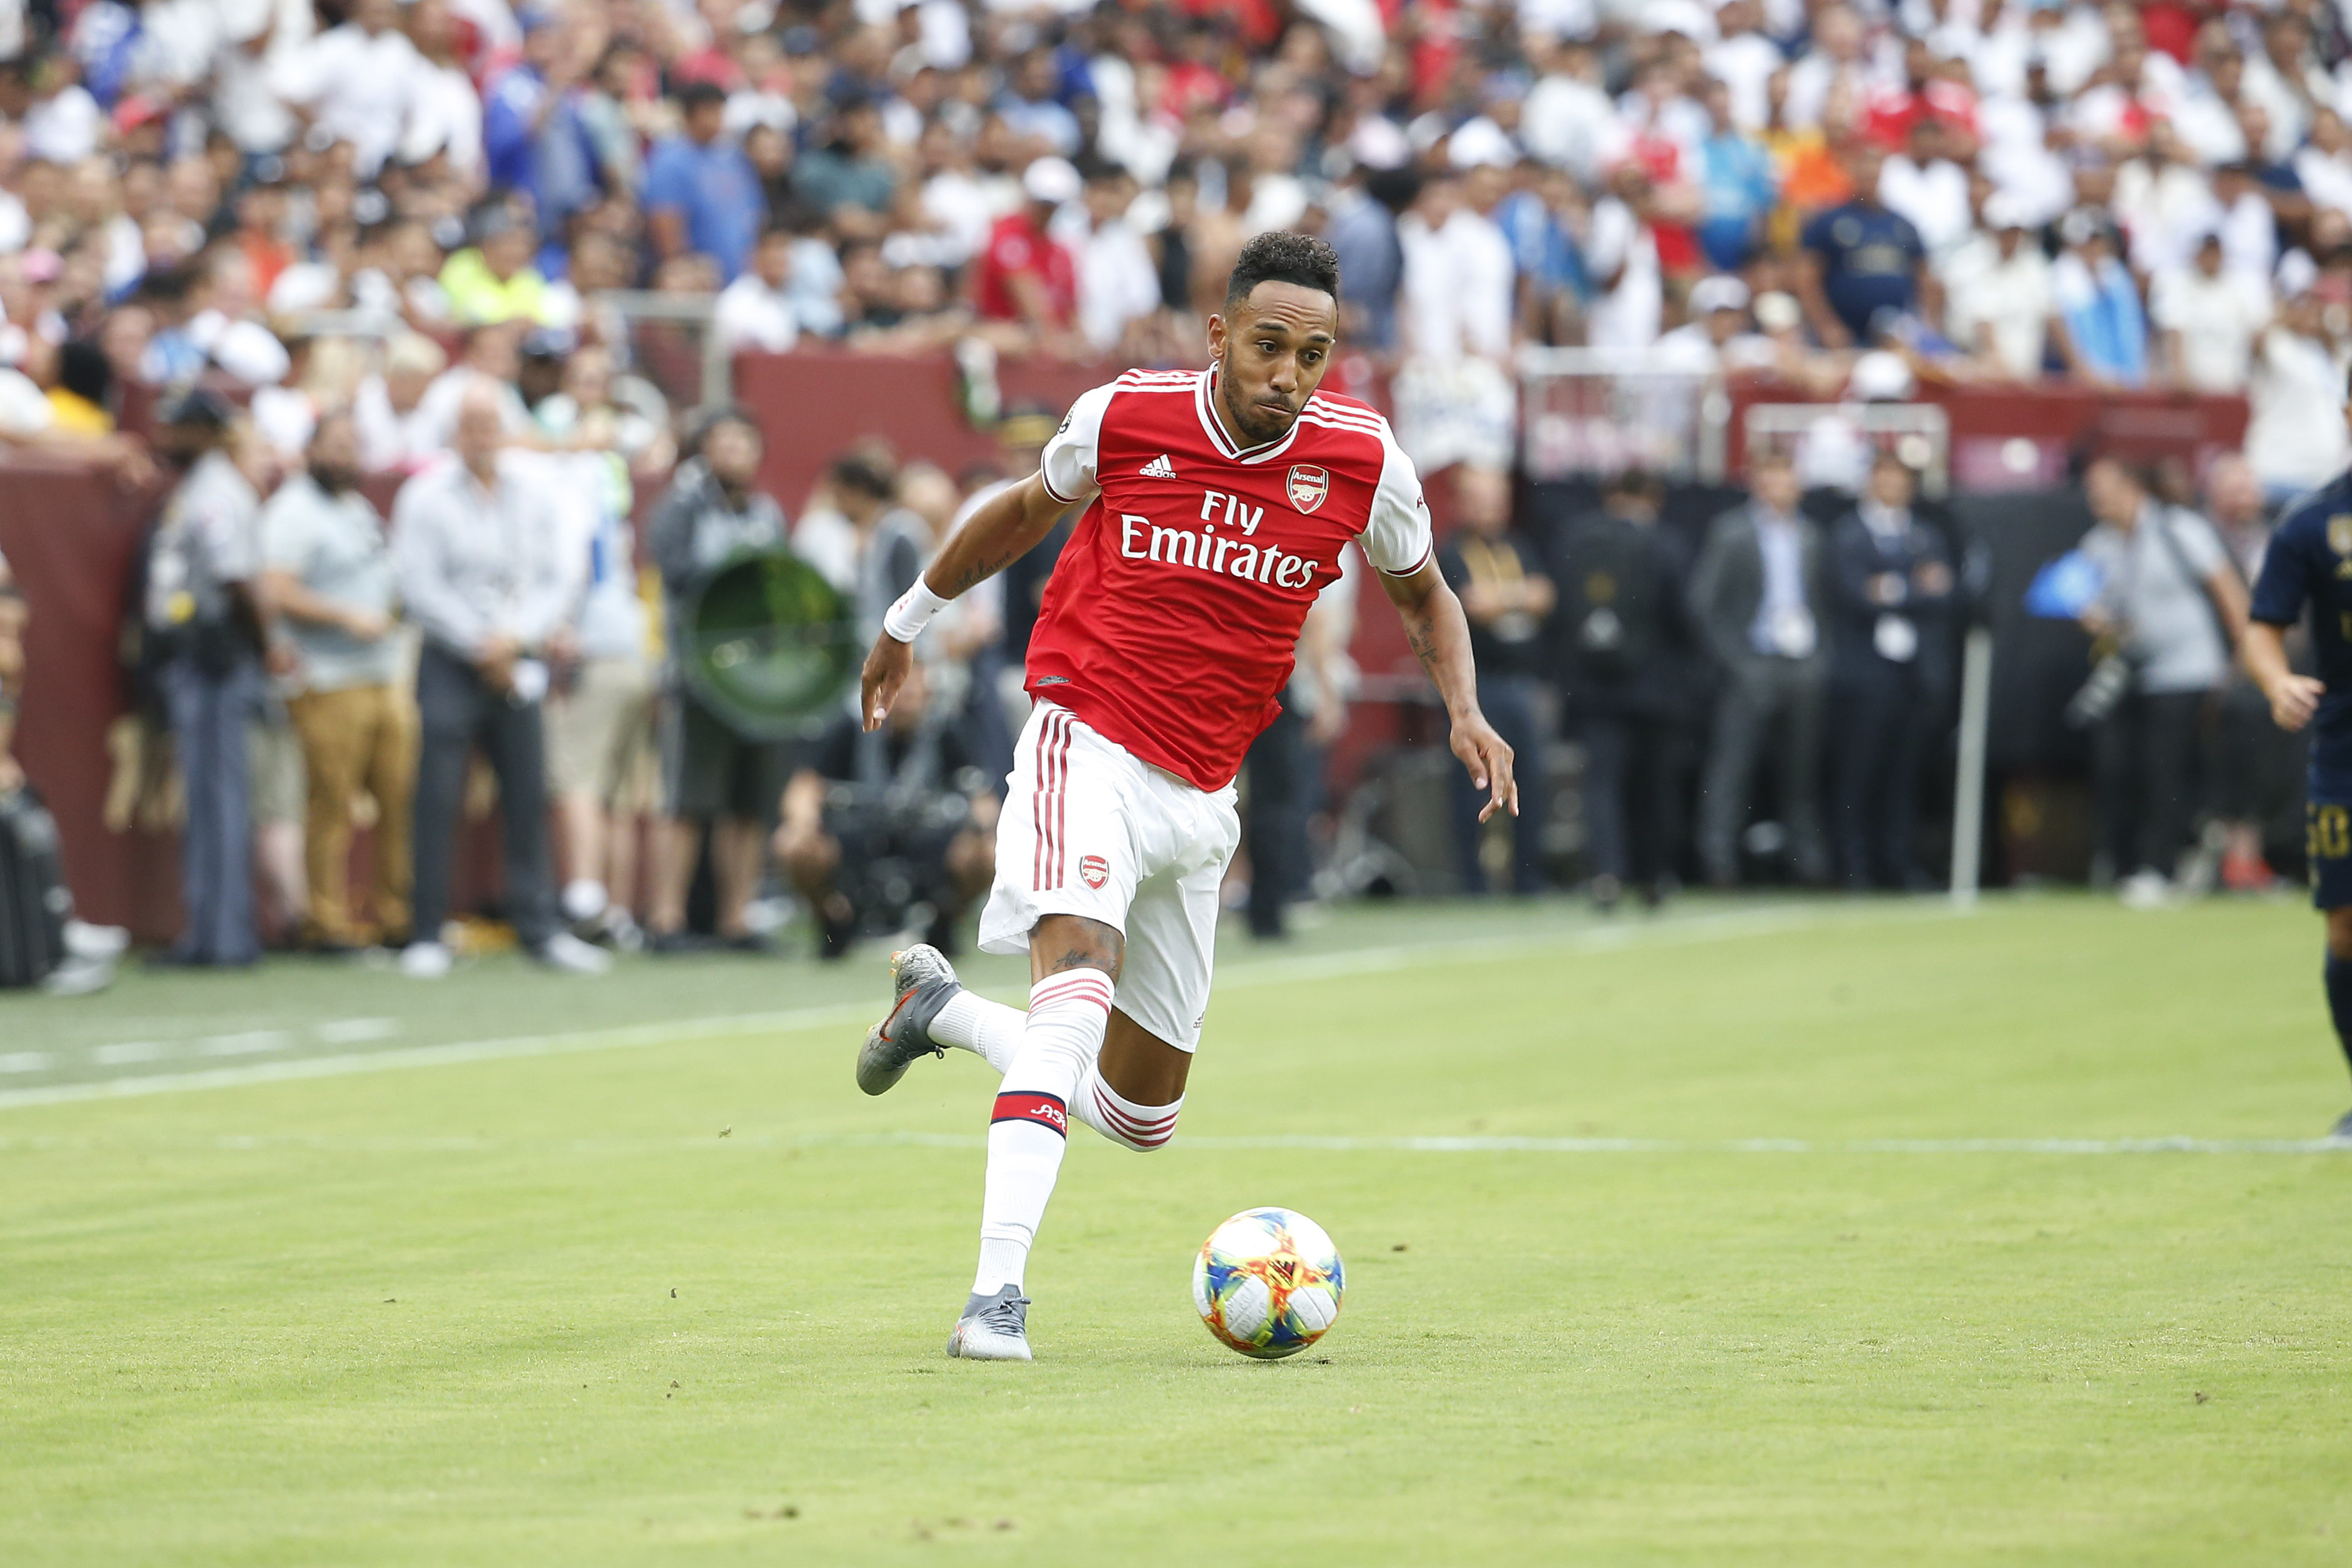 Arsenal to play Chelsea in 2020 FA Cup